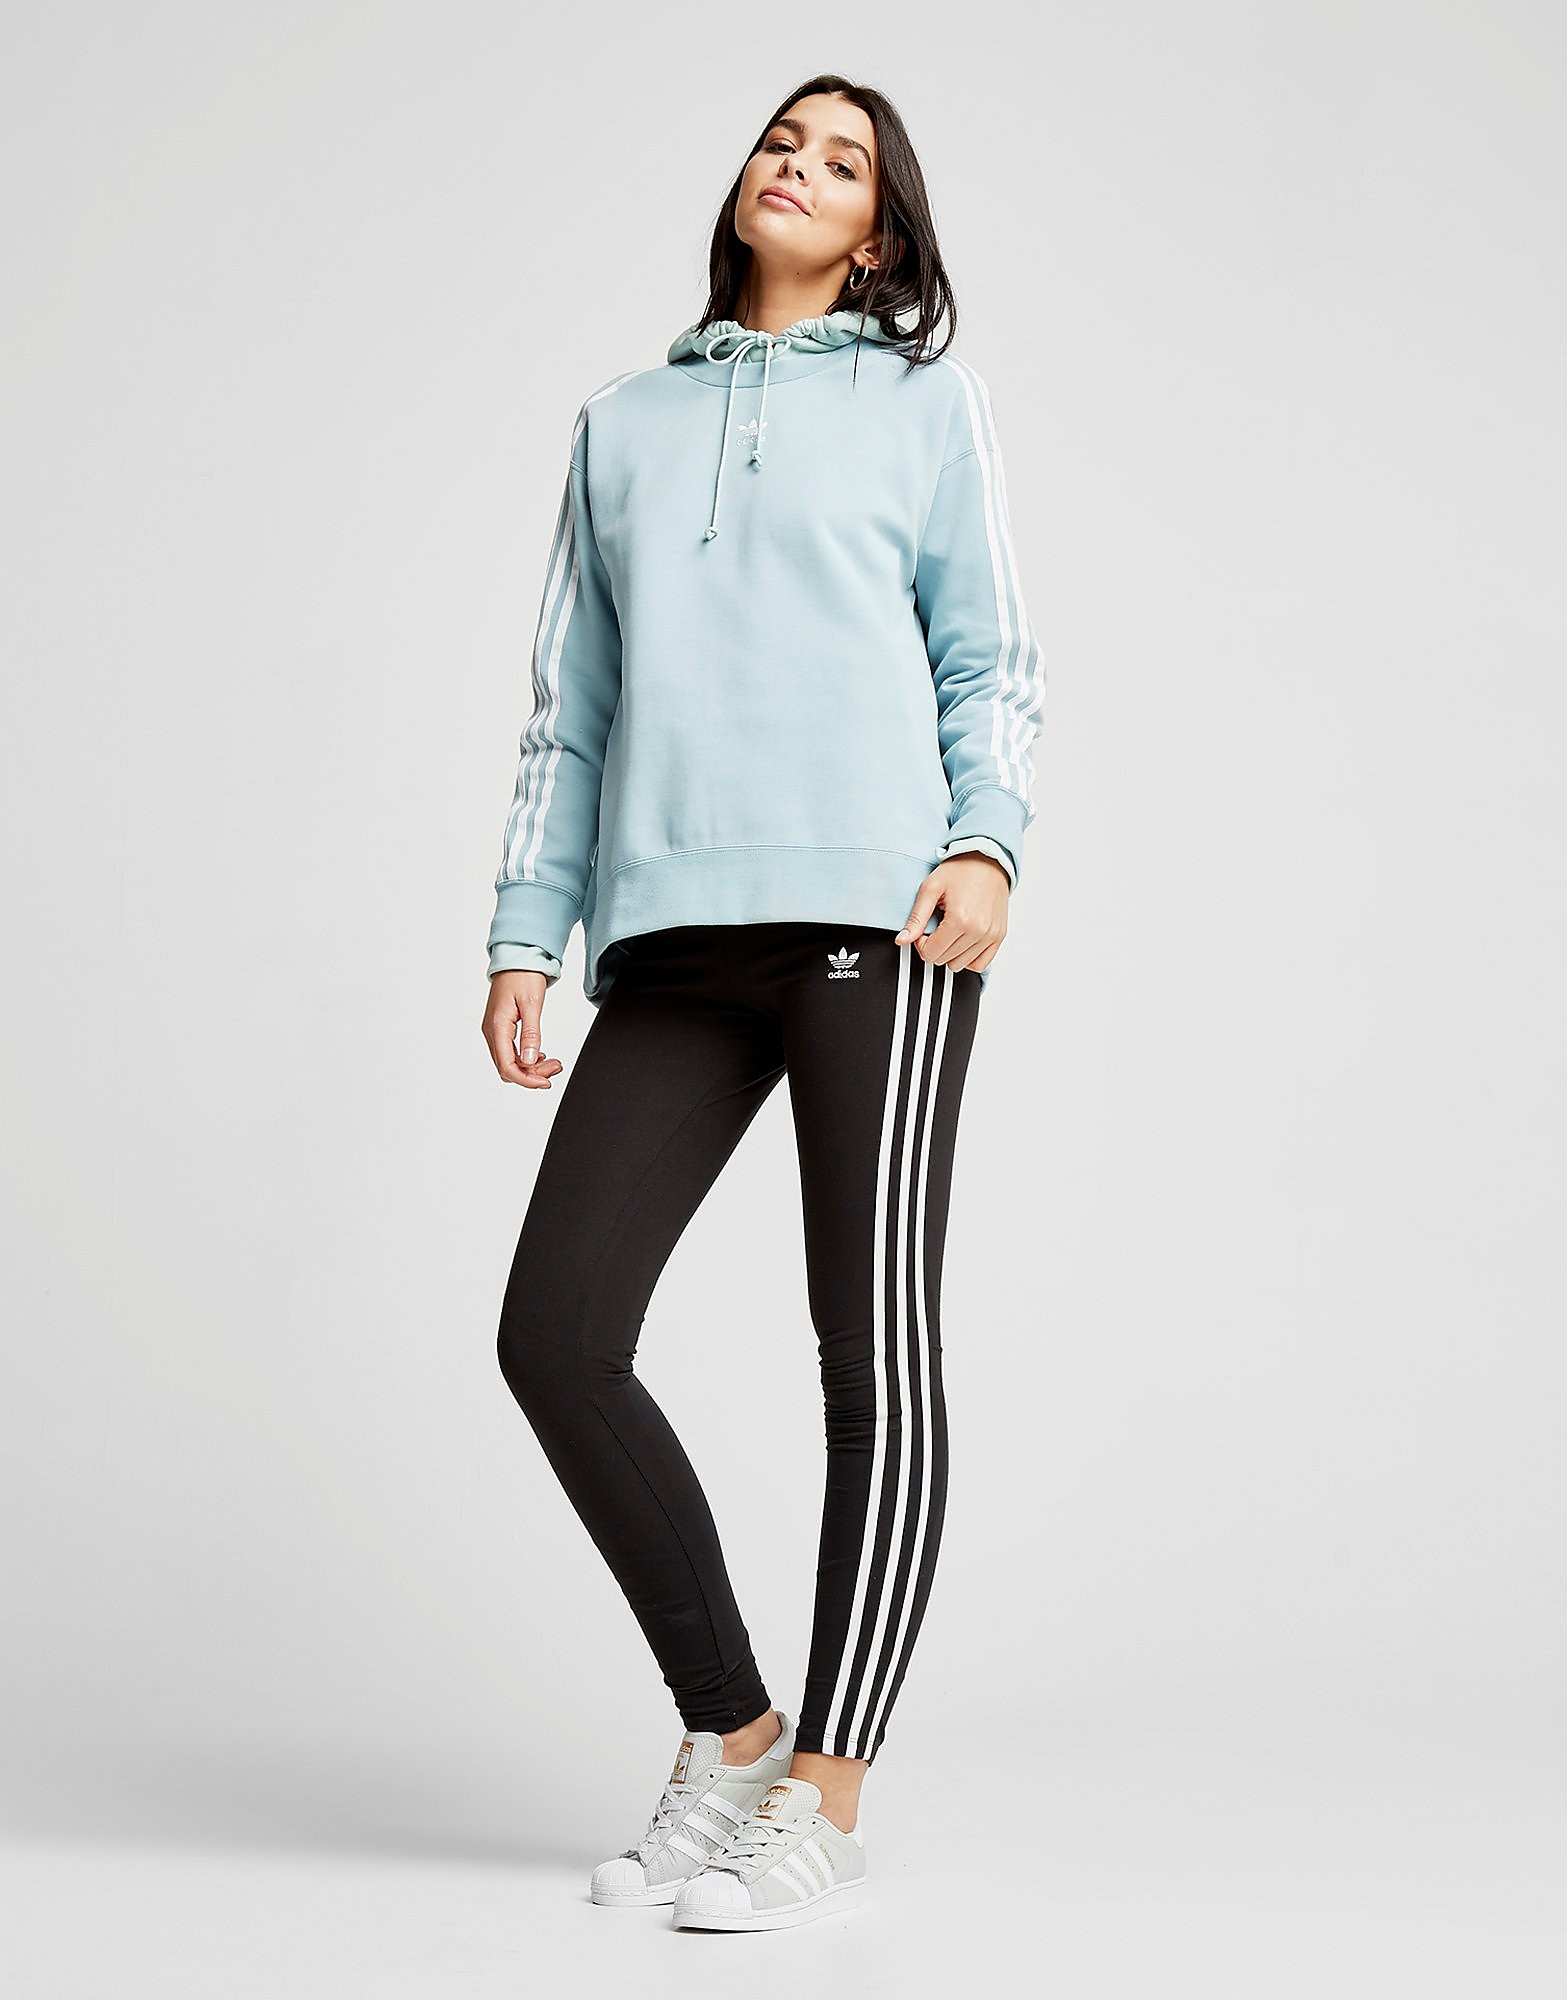 adidas Originals 3-Stripes Crew Sweatshirt